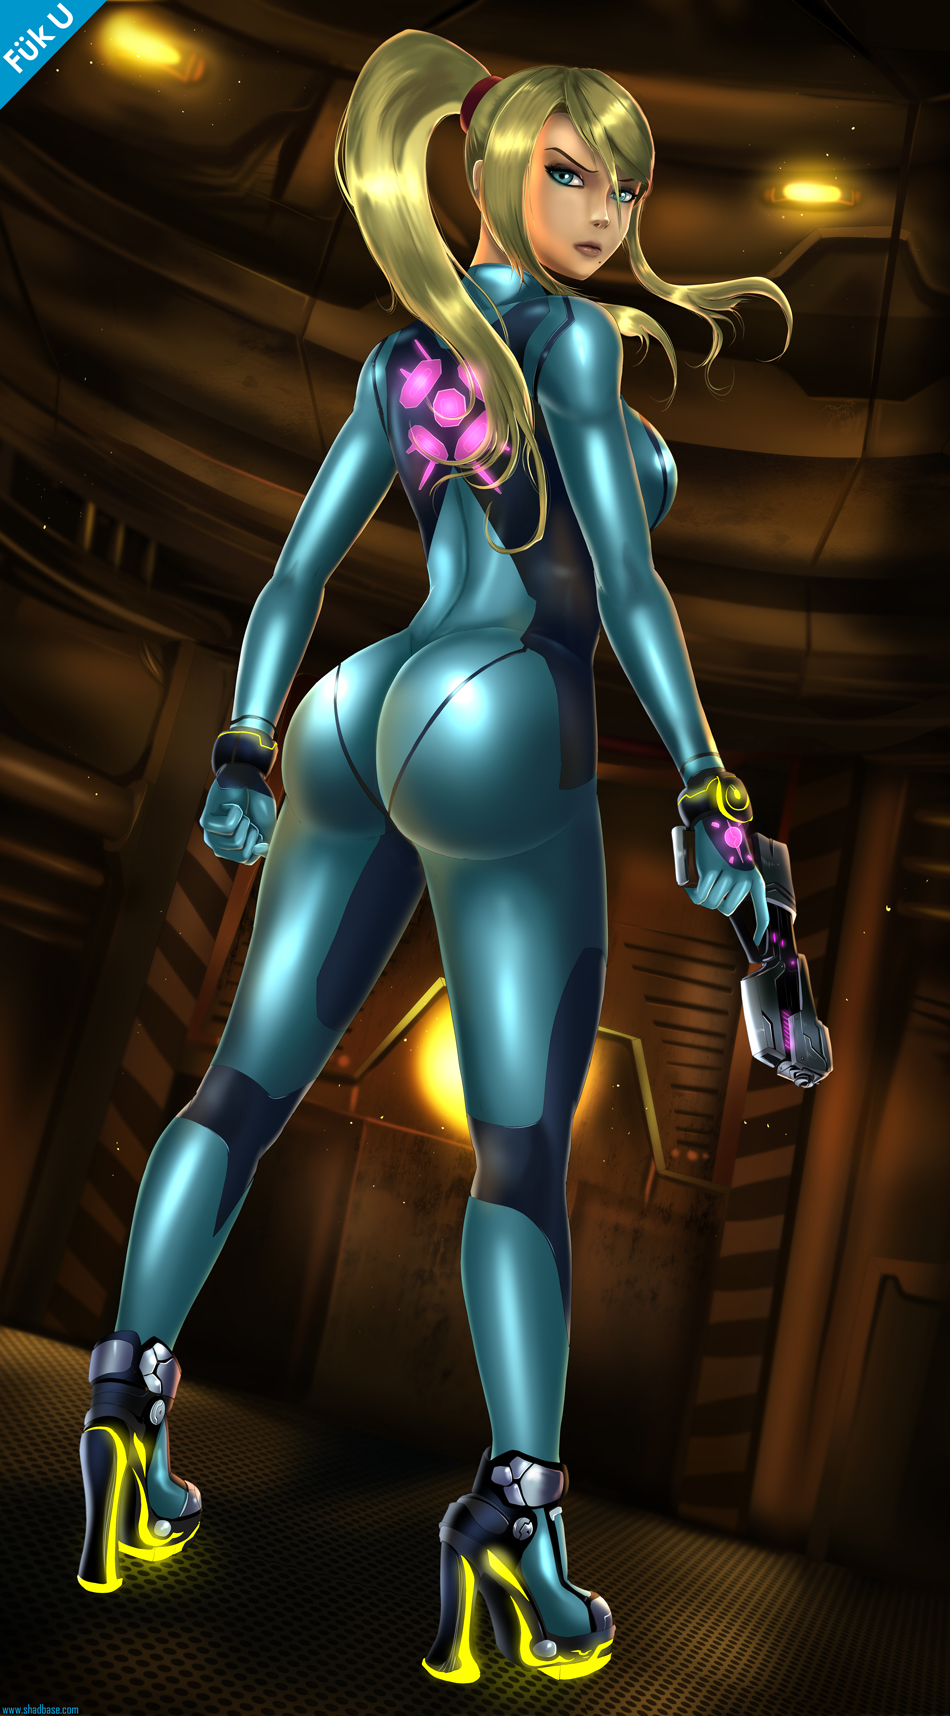 shadman gamora shadman gamora samus shadman western hentai pictures